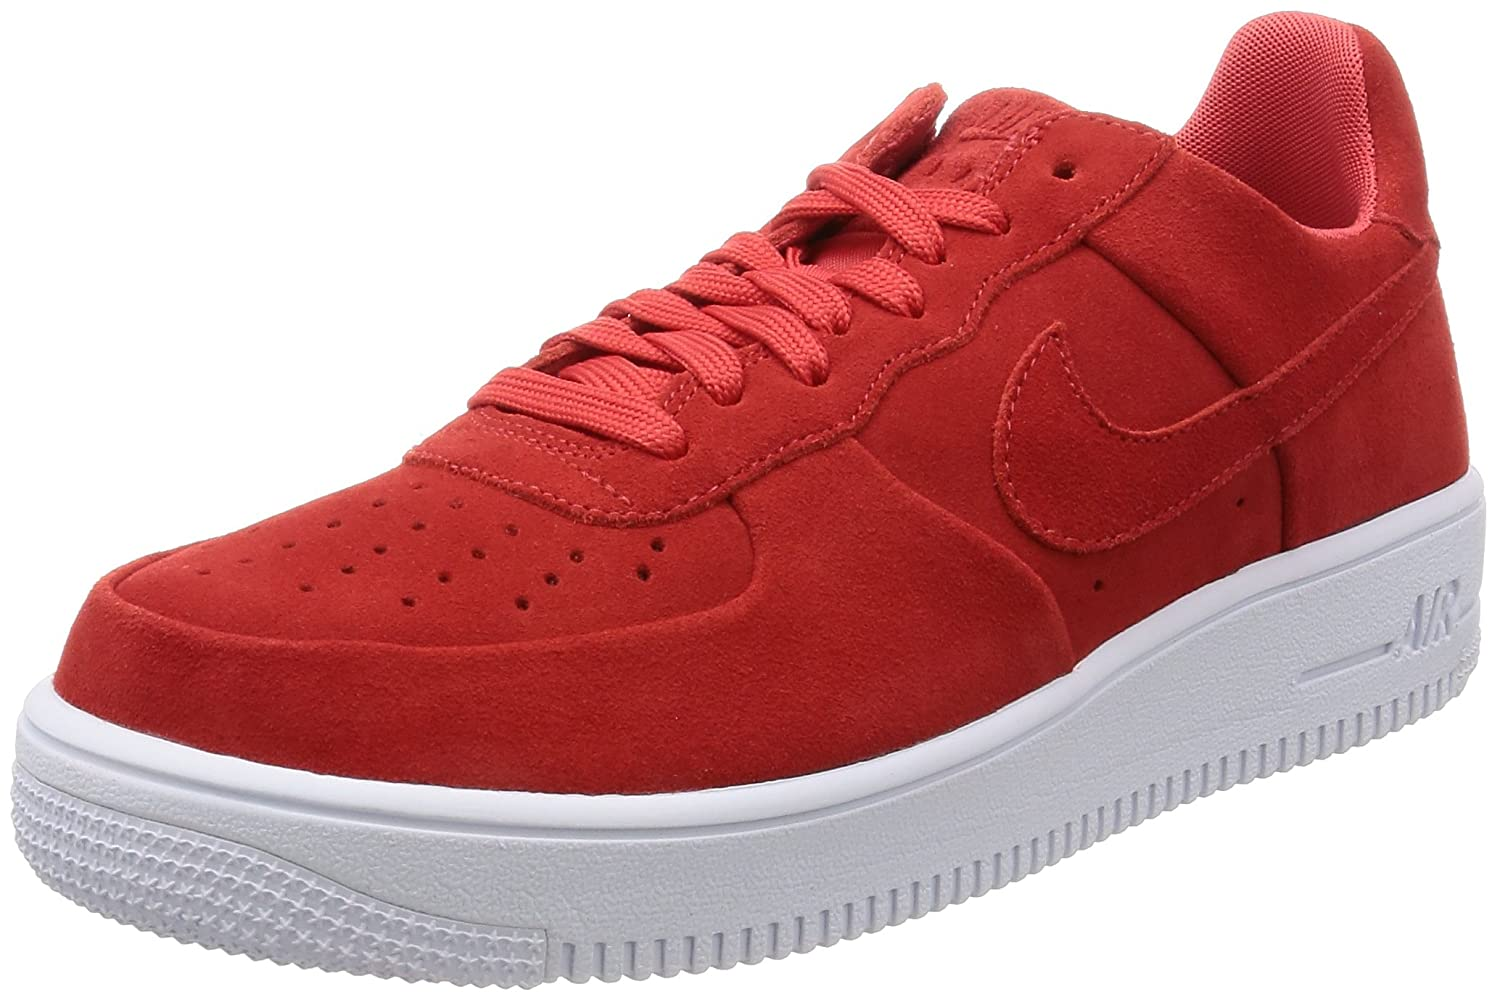 info for b1ccb 05ef8 Amazon.com   Nike Air Force 1 Ultraforce Mens Trainers 818735 Sneakers Shoes    Fashion Sneakers